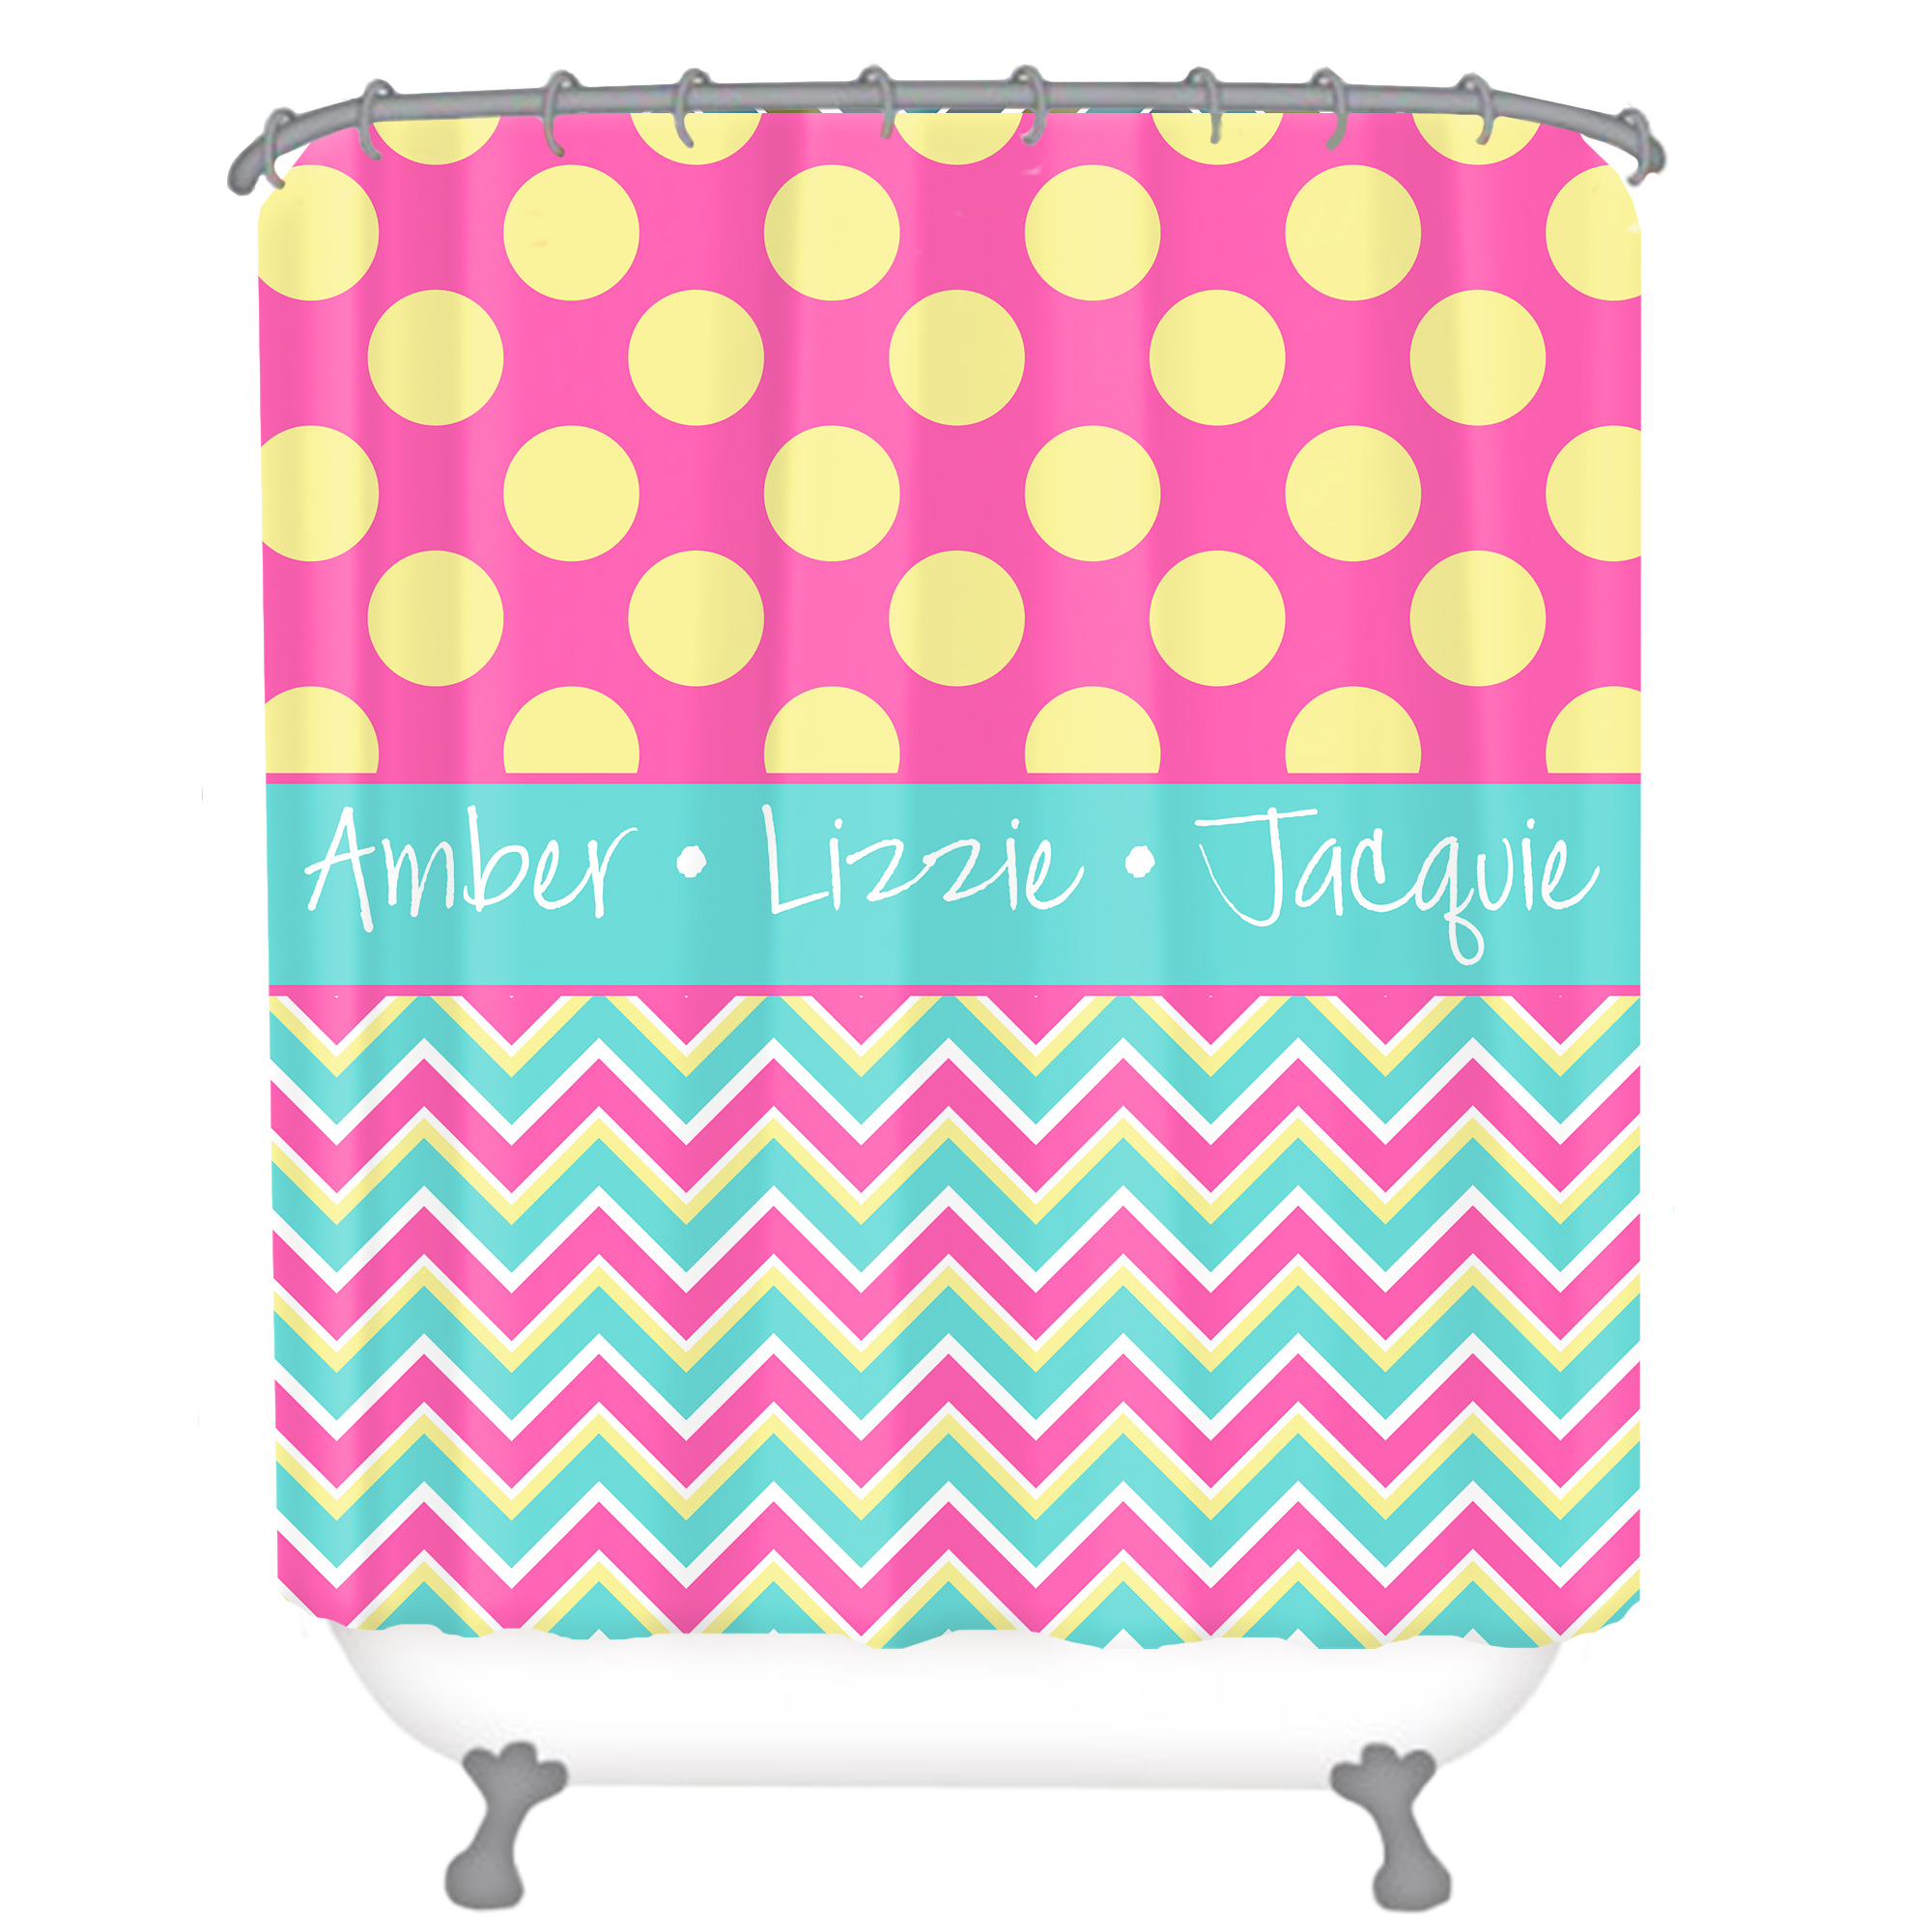 Aqua Chevron Shower Curtain - Chevron polka dot personalized shower curtain